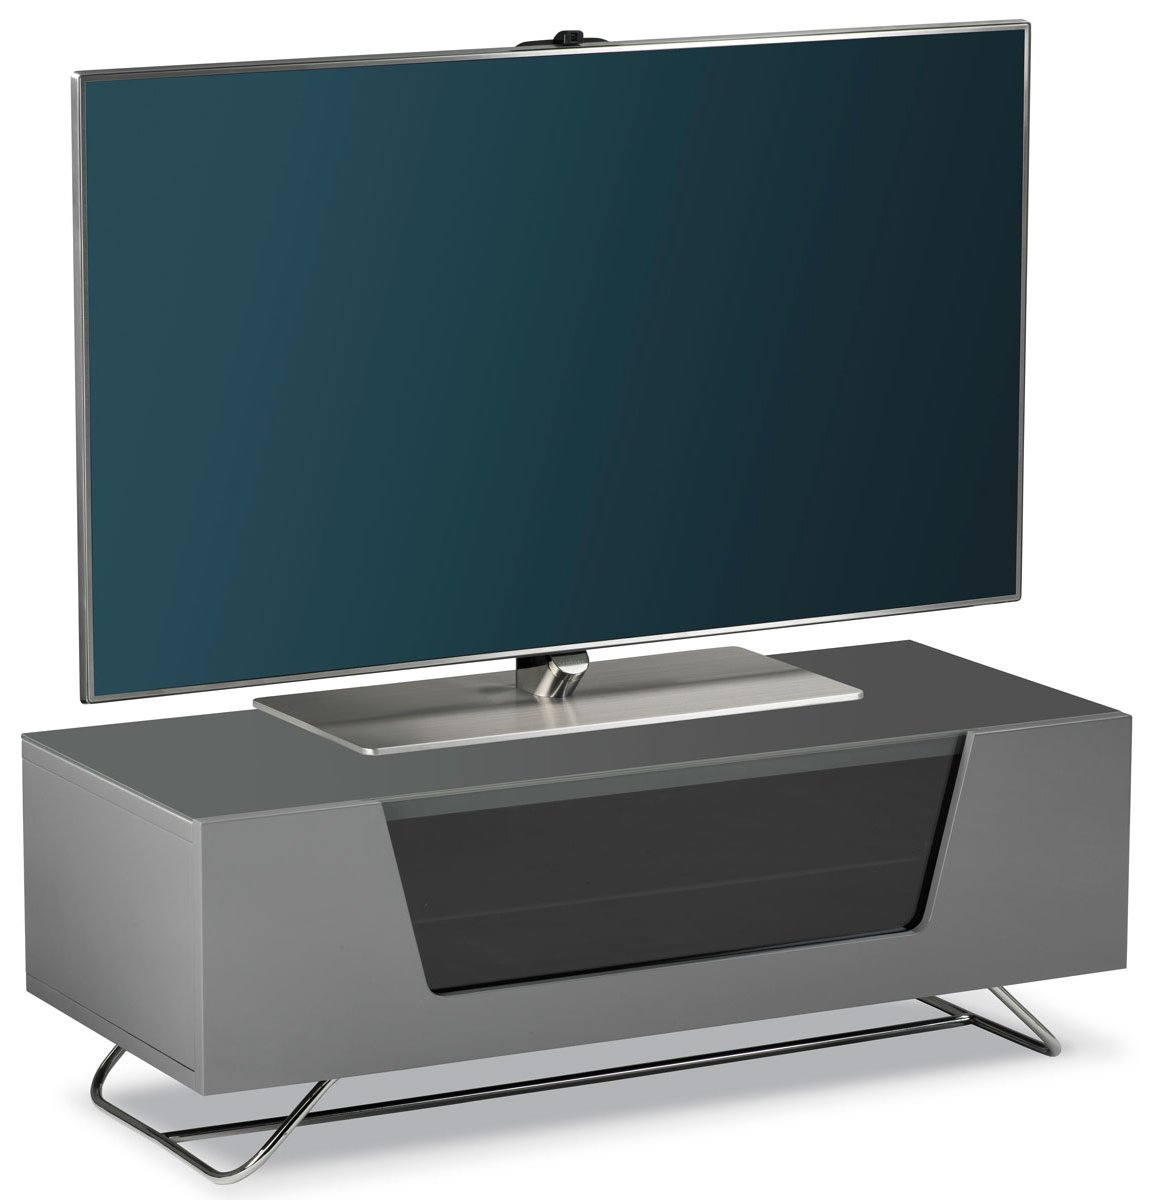 Alphason Chromium 1000 Grey Tv Stand For Up To 50 Quot Tvs